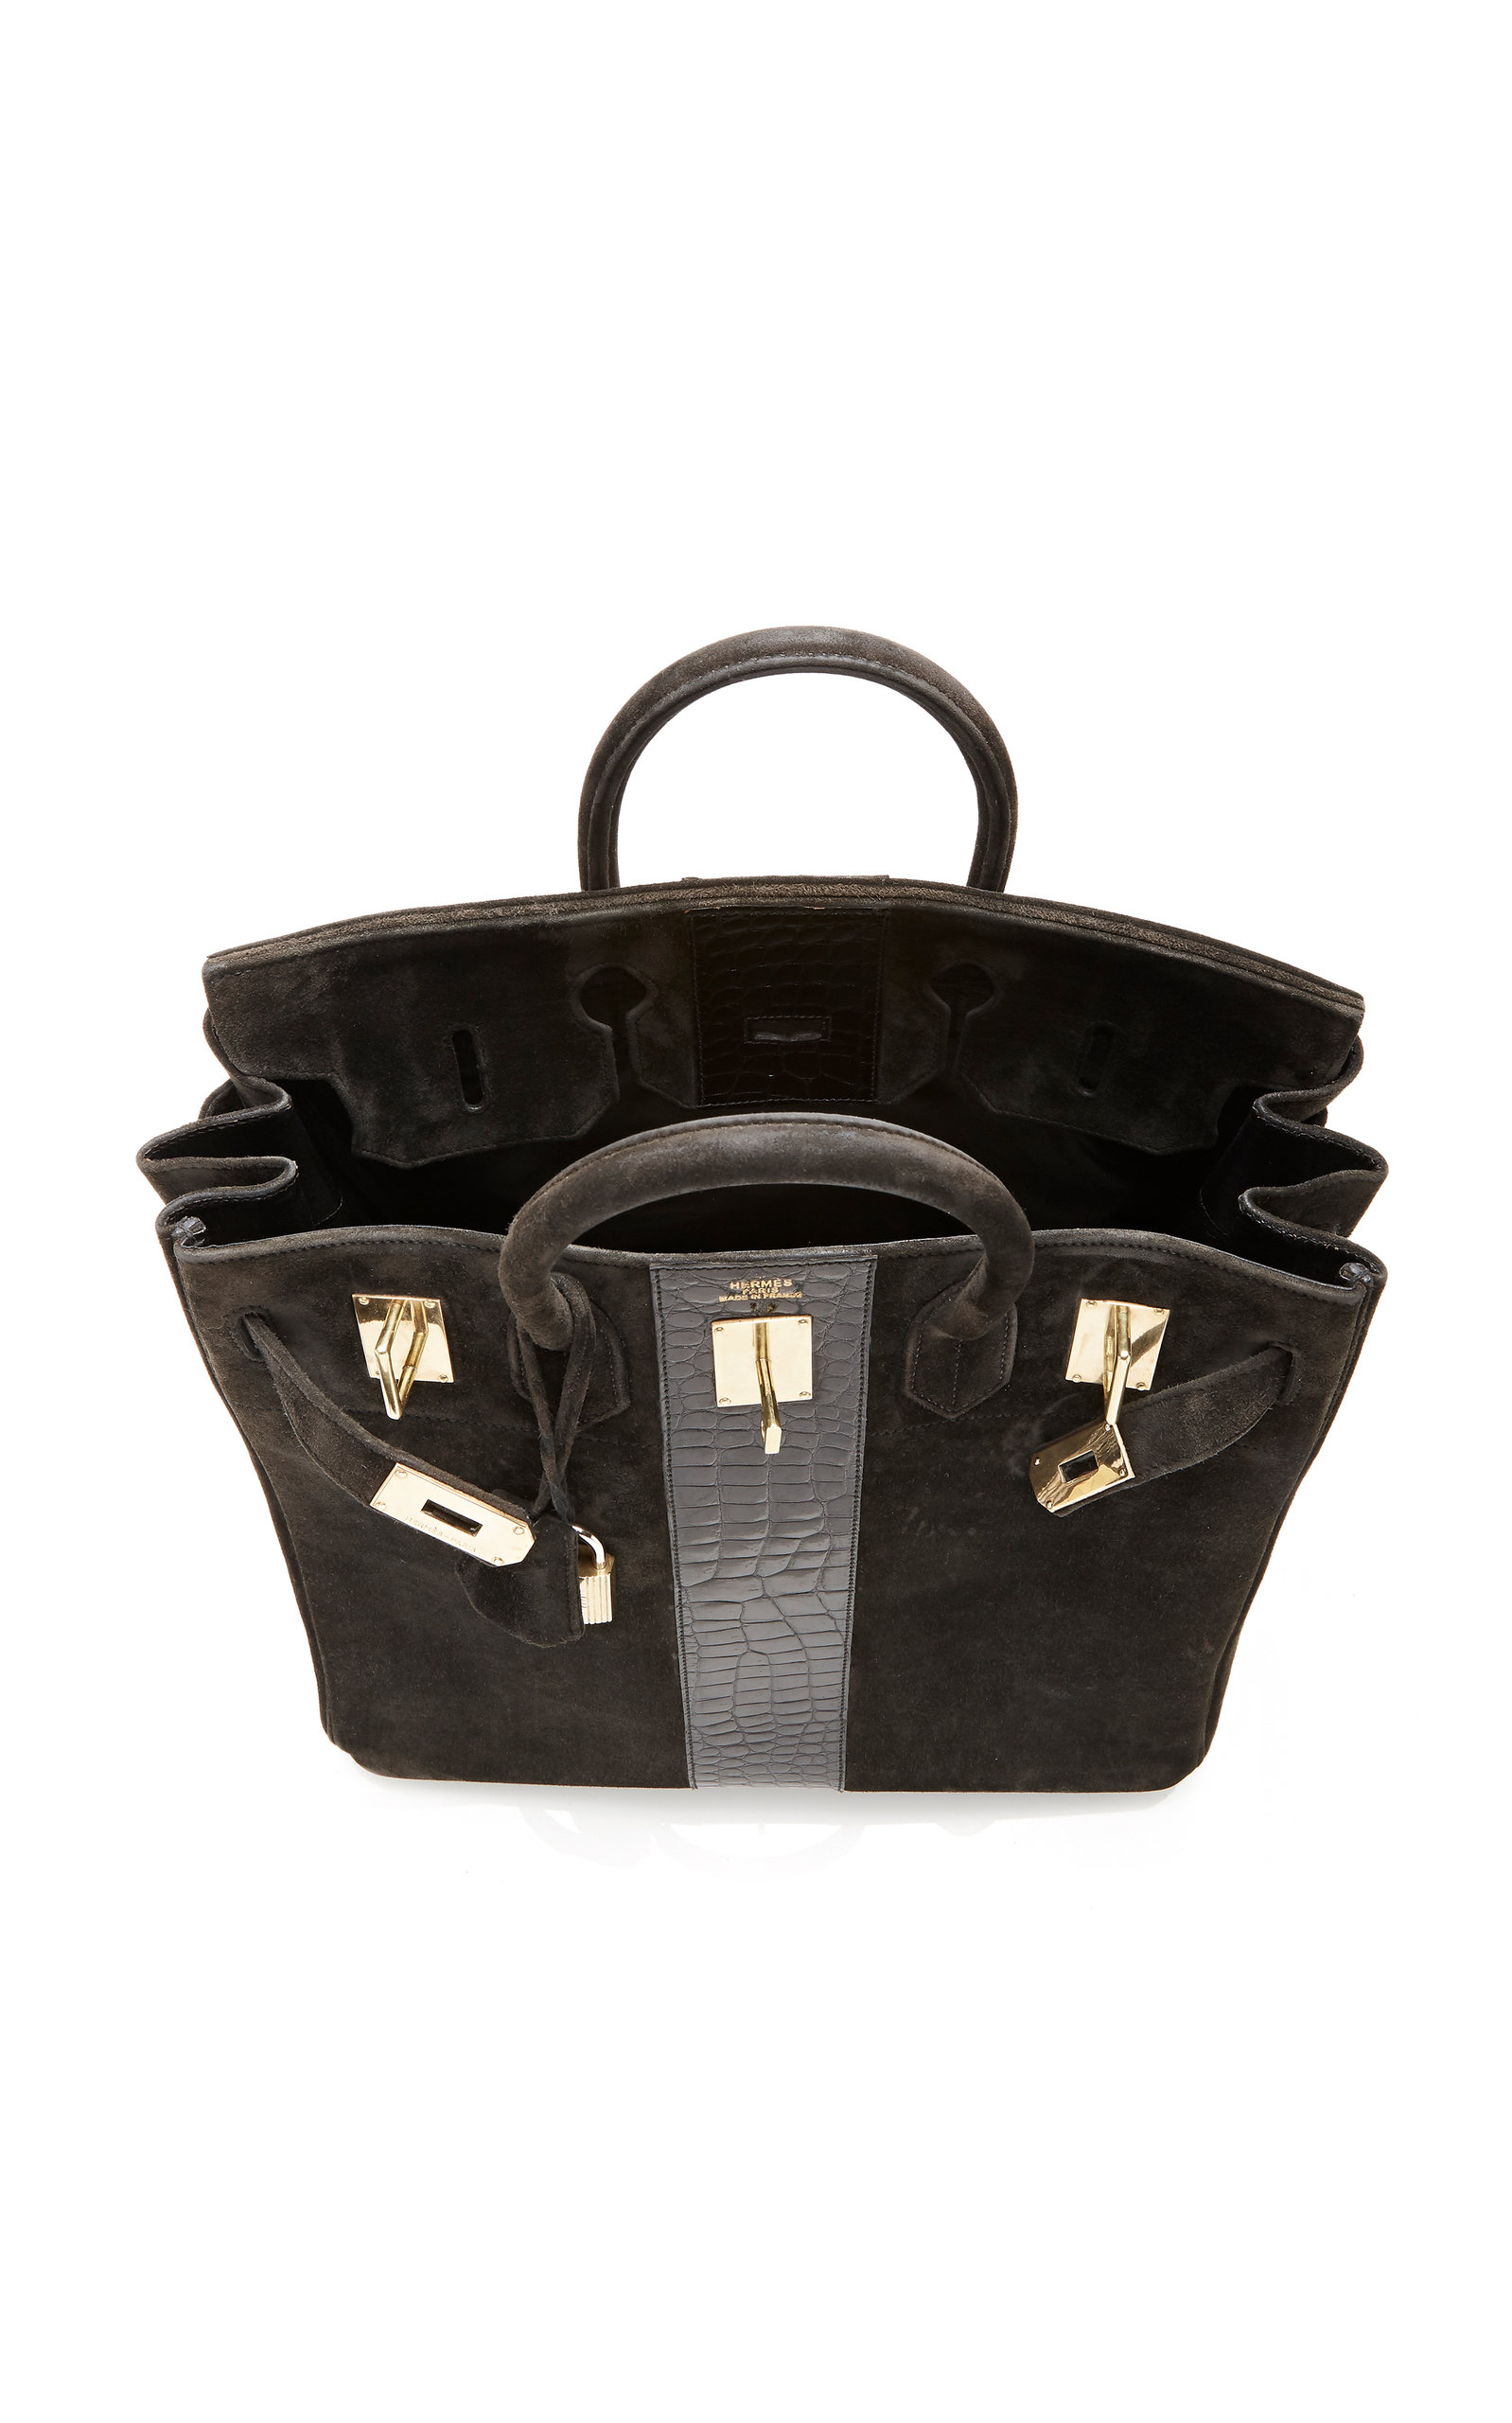 e75fed7ed4 Hermès 40cm Black Doblis Suede and Crocodile HAC Birkin by Hermès ...